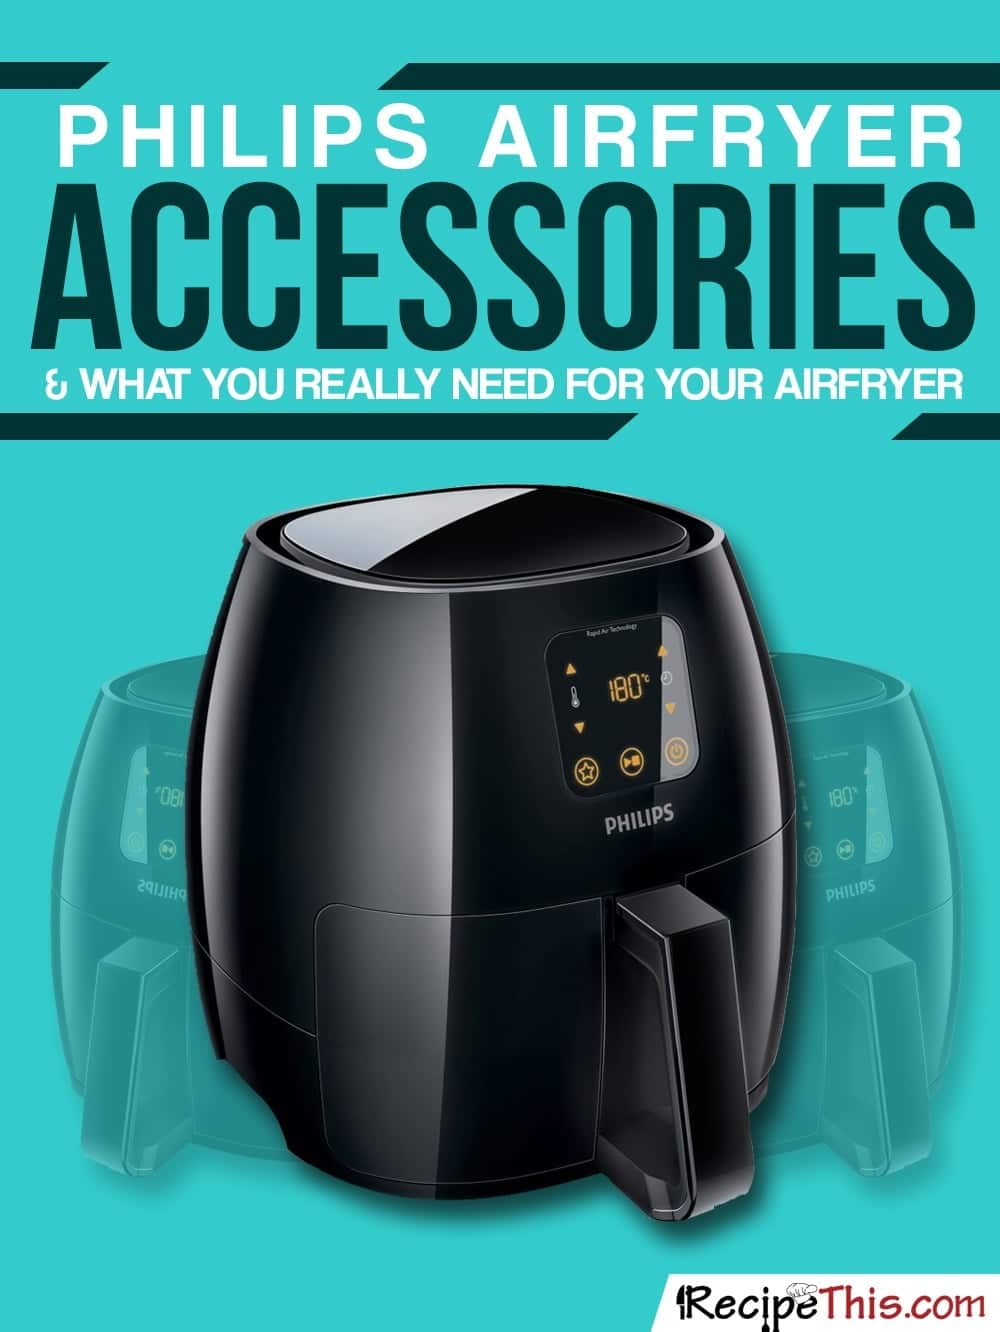 Marketplace | Philips Airfryer Accessories & What You Really Need